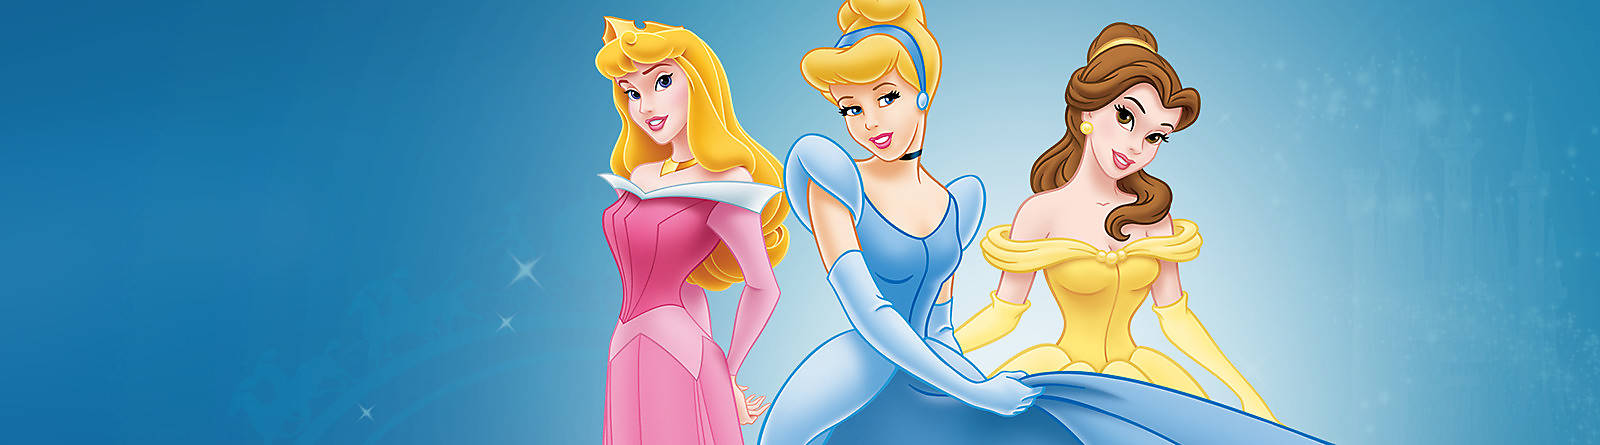 Disney Princess Discover our magical range of Disney Princess costumes, dolls, toys, clothing and more